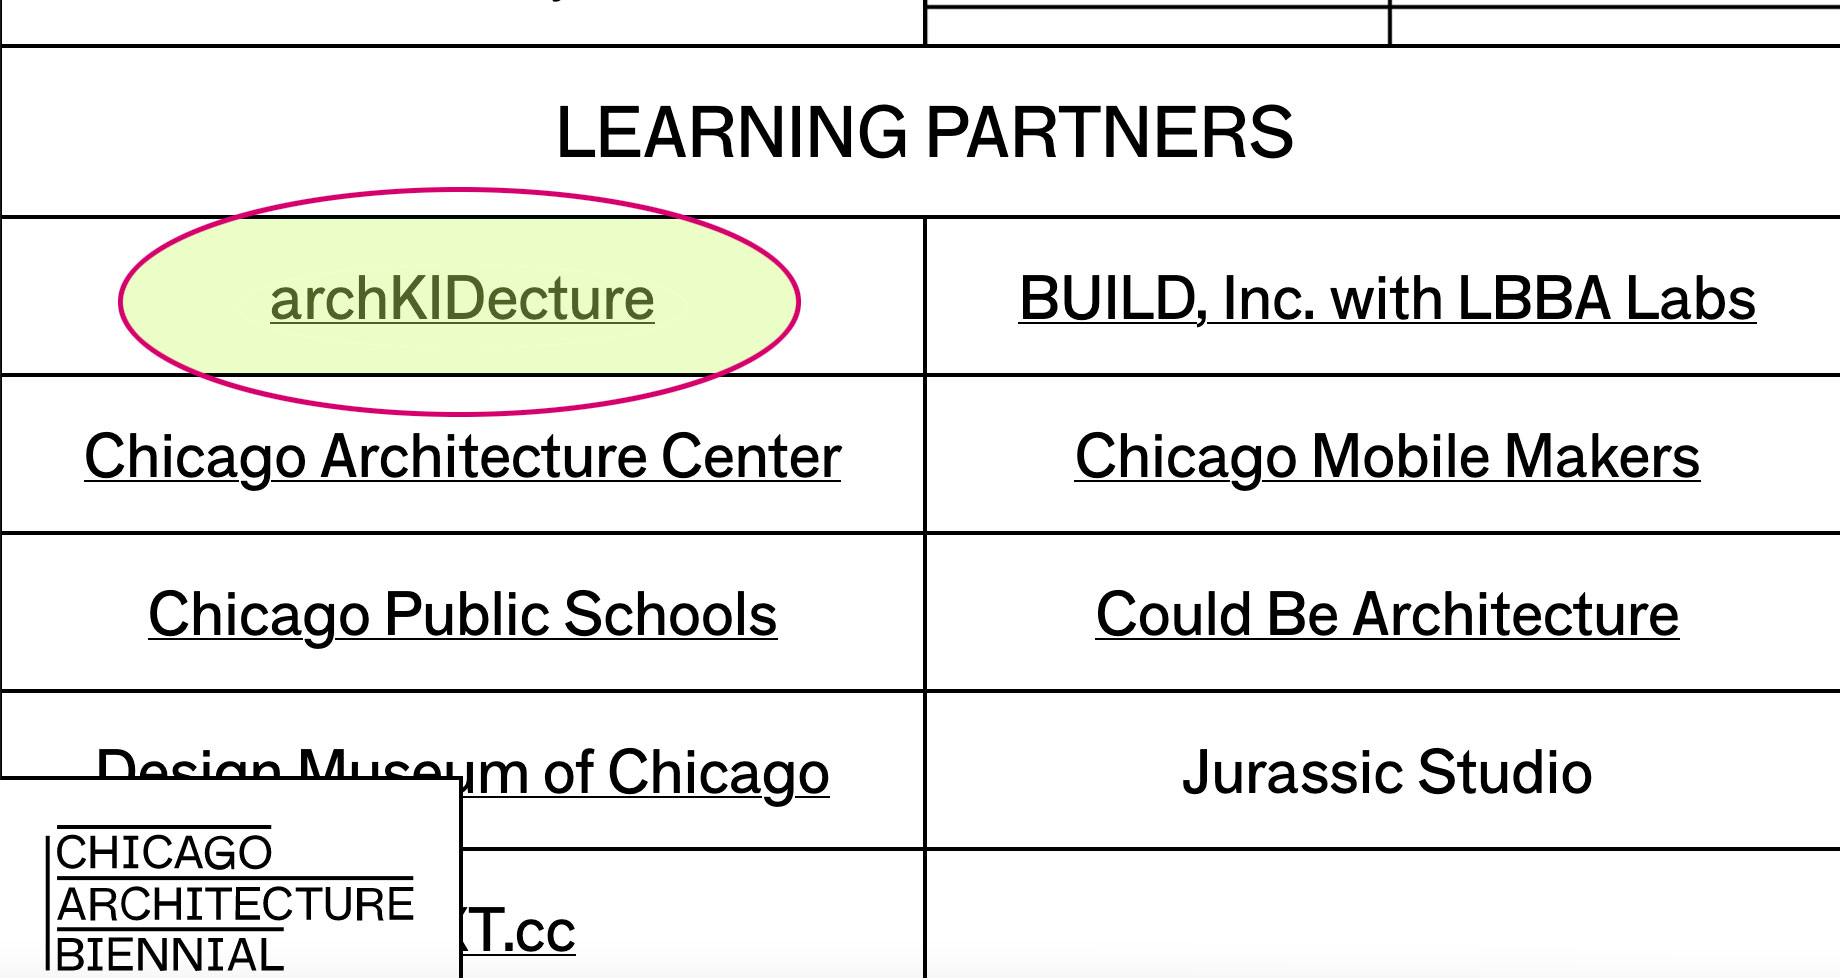 Chicago Architecture Biennial learning partner for archKIDecture